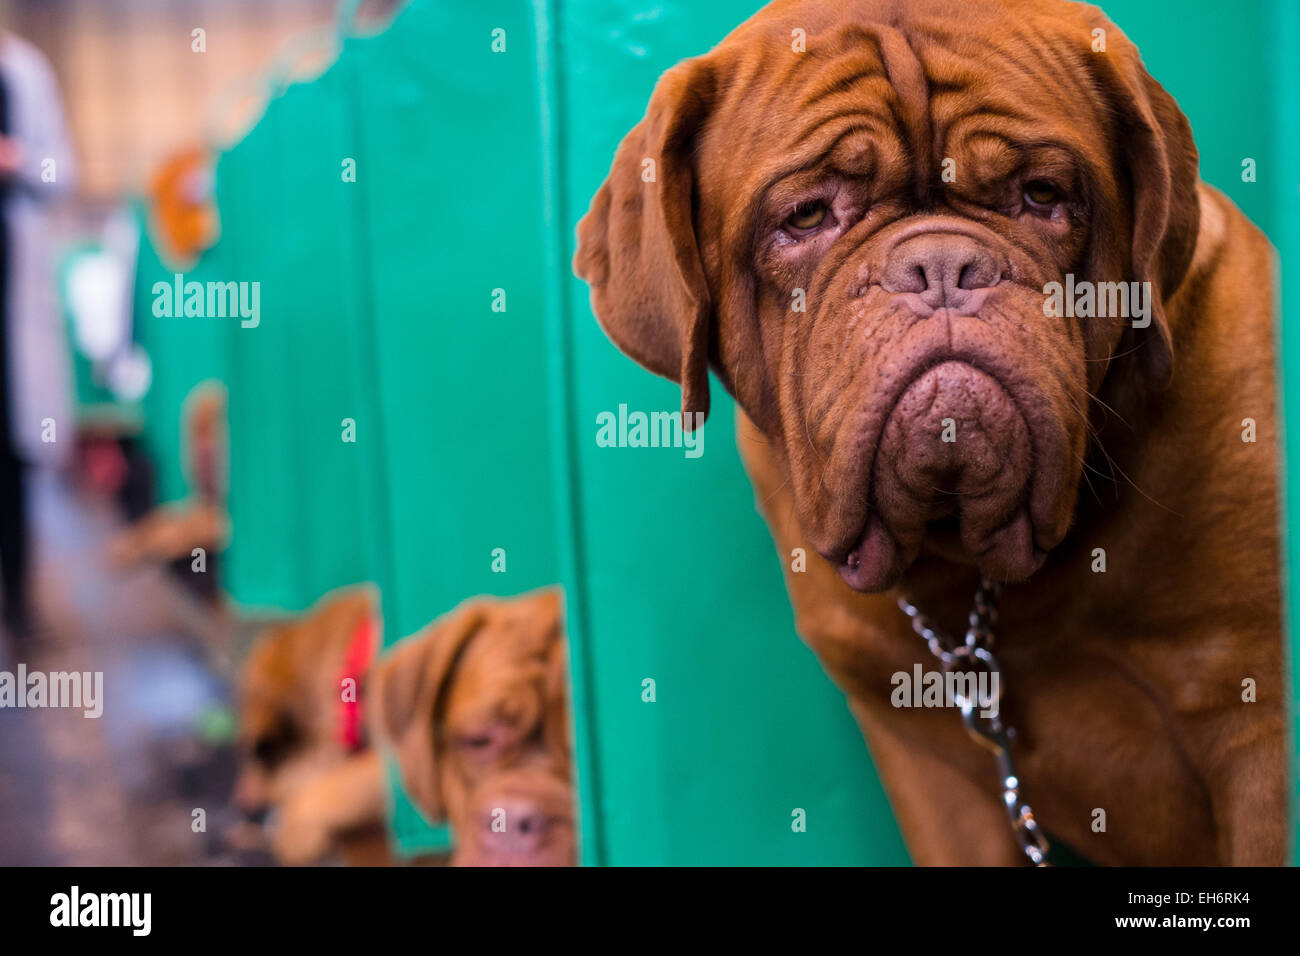 Birmingham, UK. 06th Mar, 2015. First held in 1891, Crufts is said to be the largest show of its kind in the world, - Stock Image